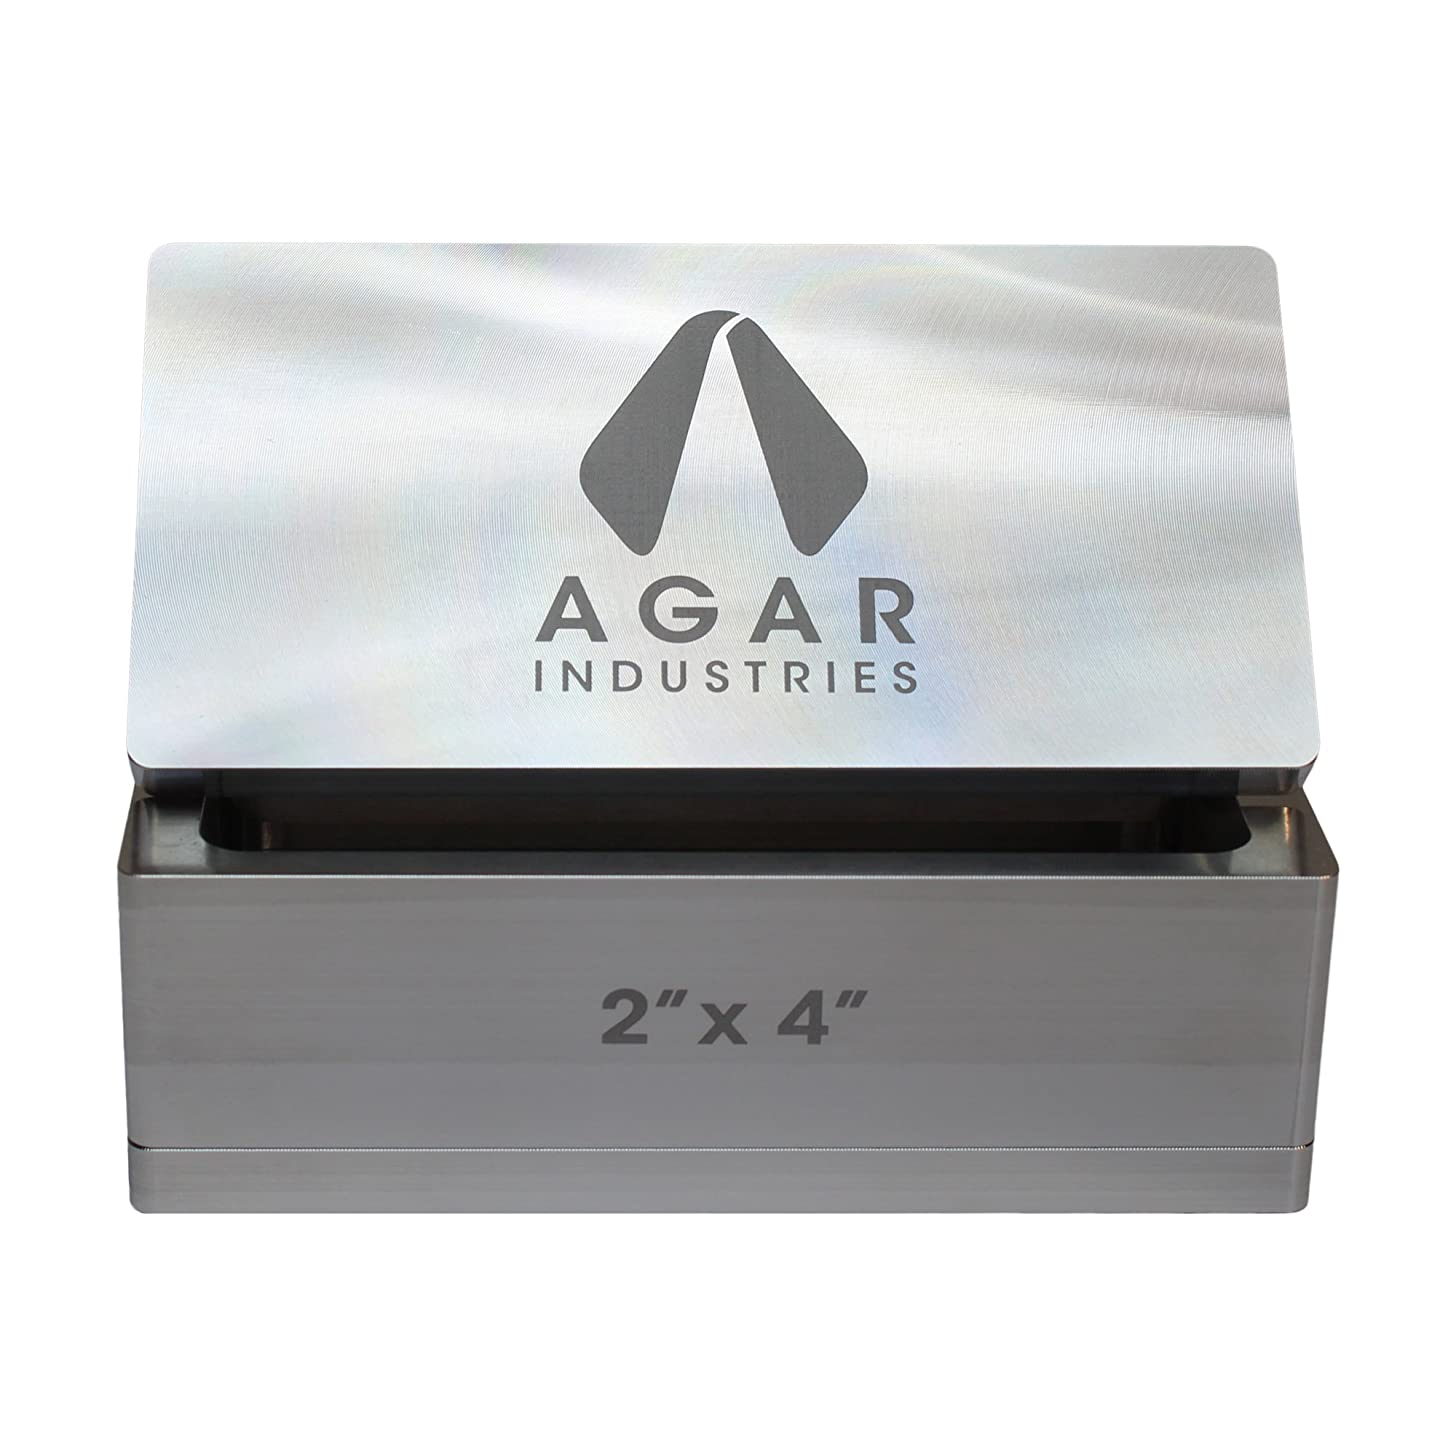 Agar Industries Rosin Pre Press Mold for DIY Solventless Extraction & Pressing - 2